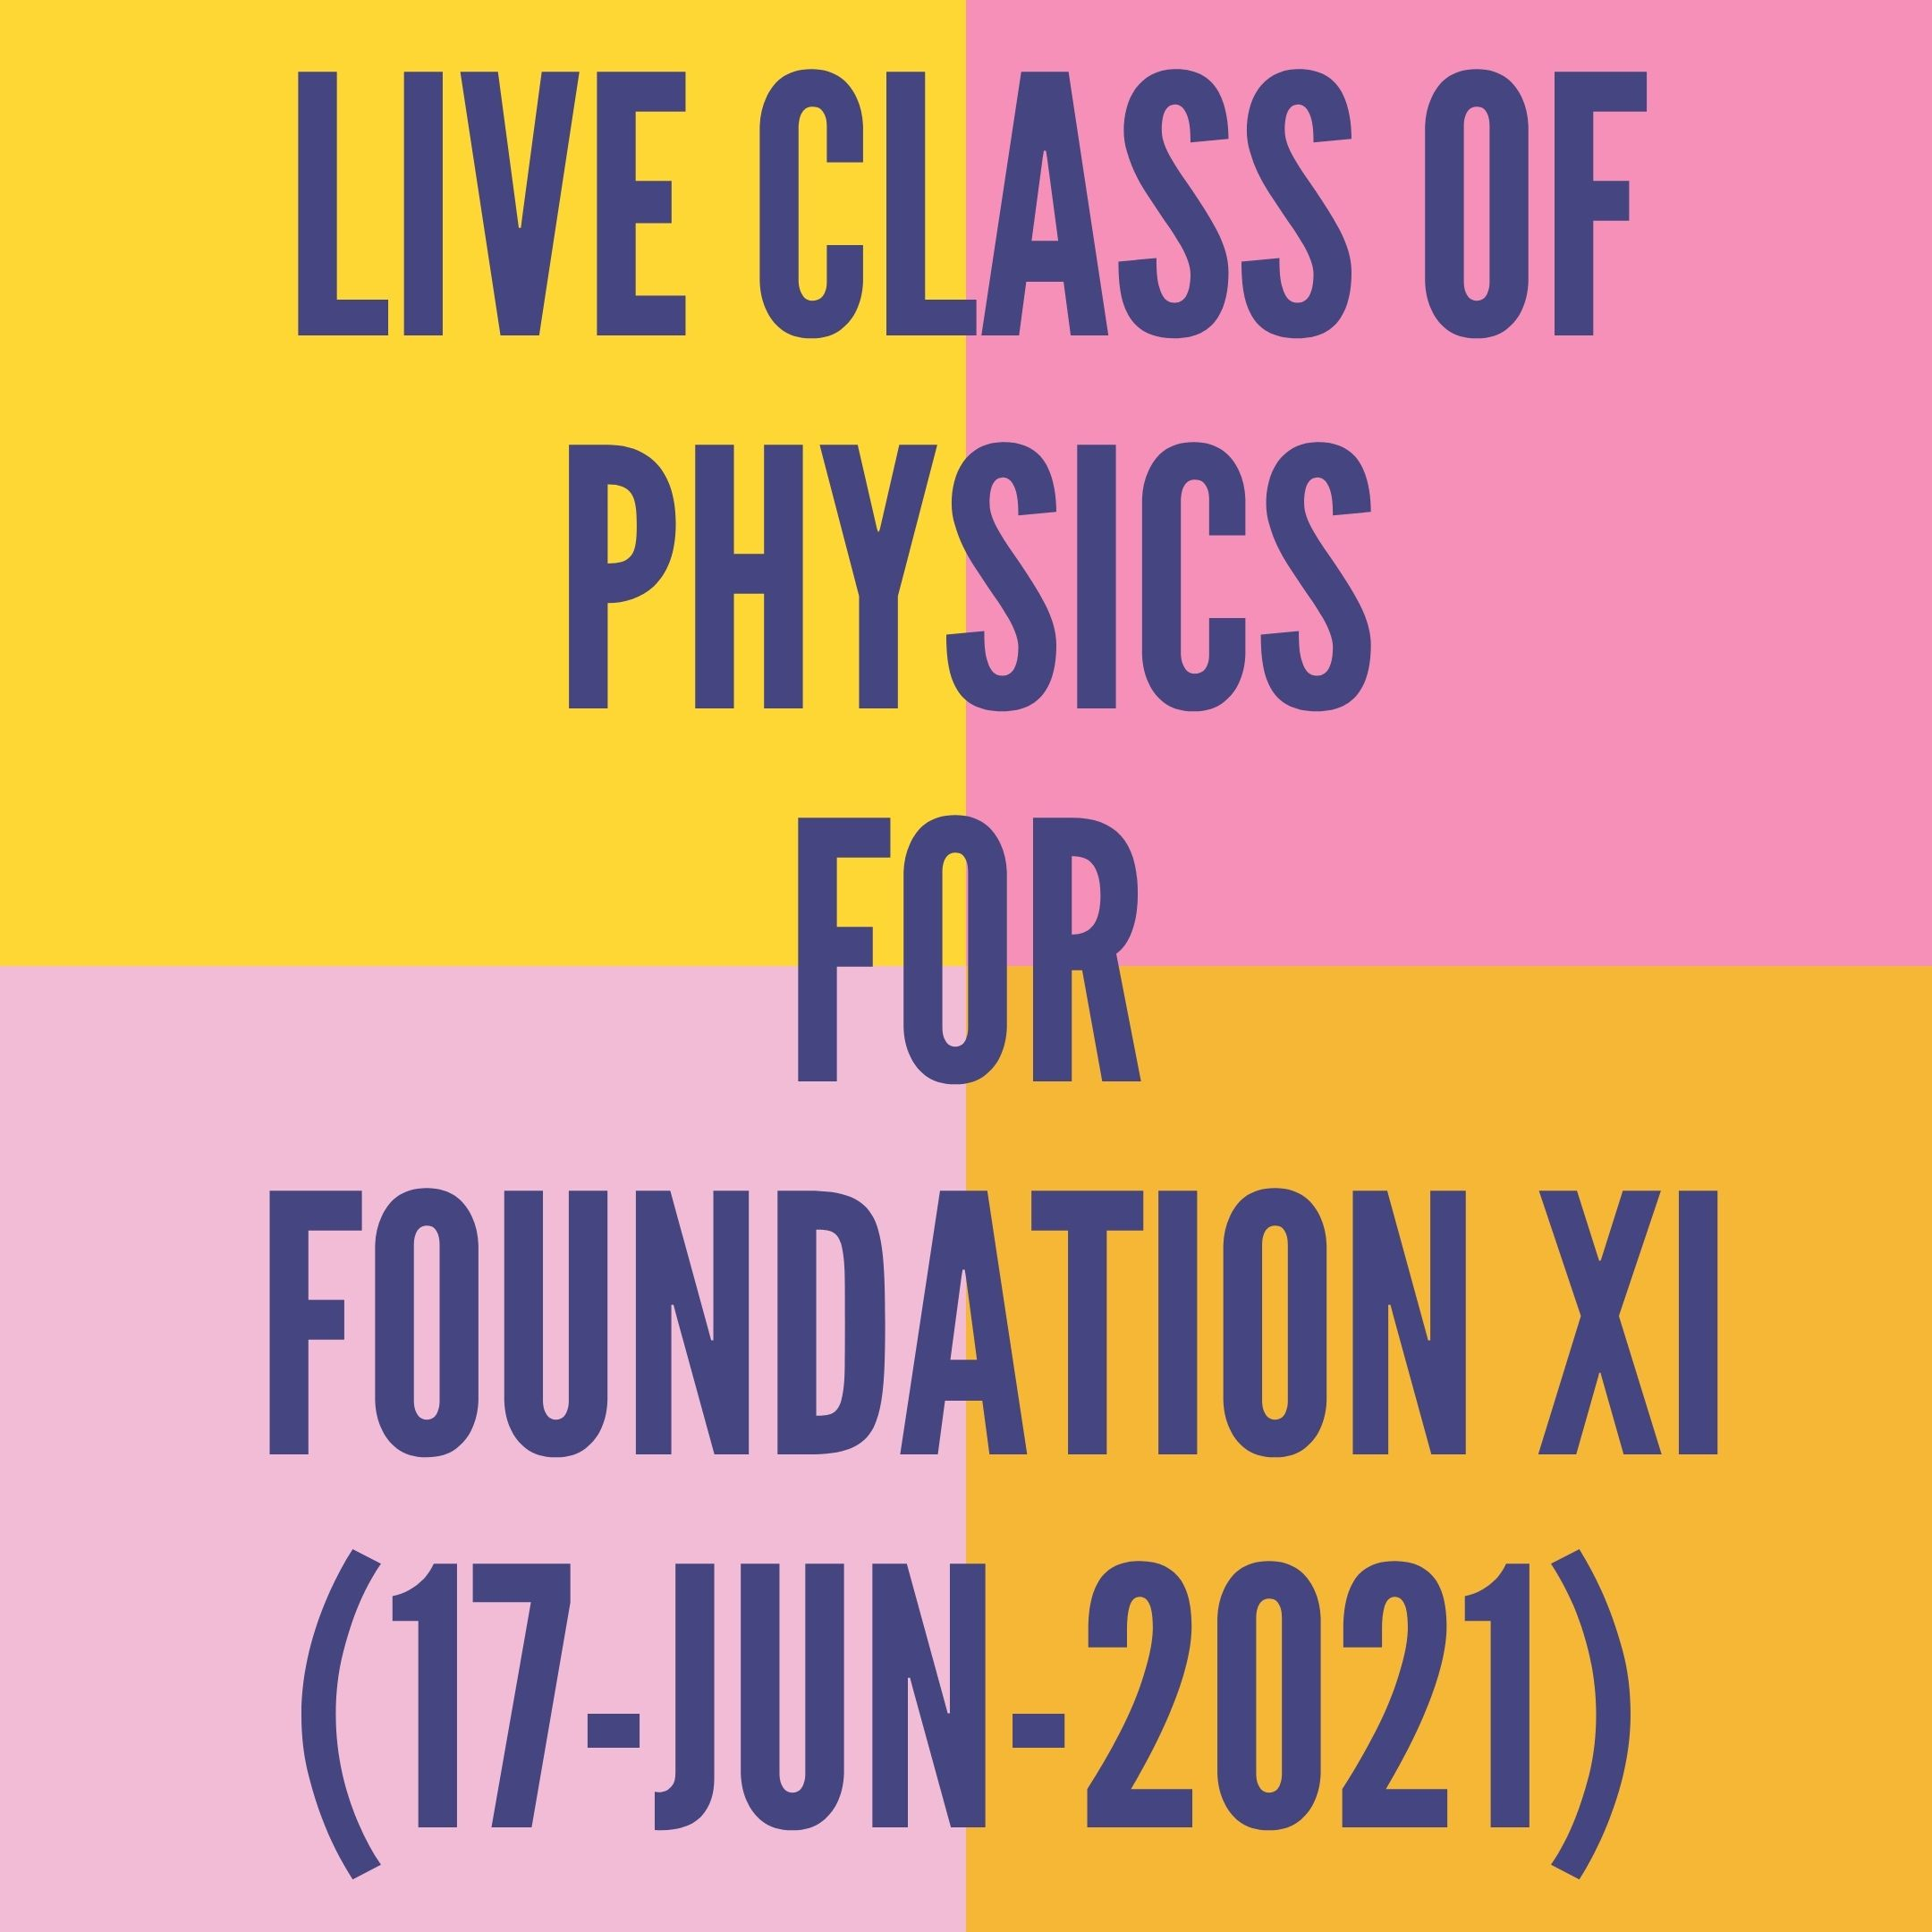 LIVE CLASS OF PHYSICS FOR FOUNDATION XI (17-JUN-2021)APPLIED MATHS